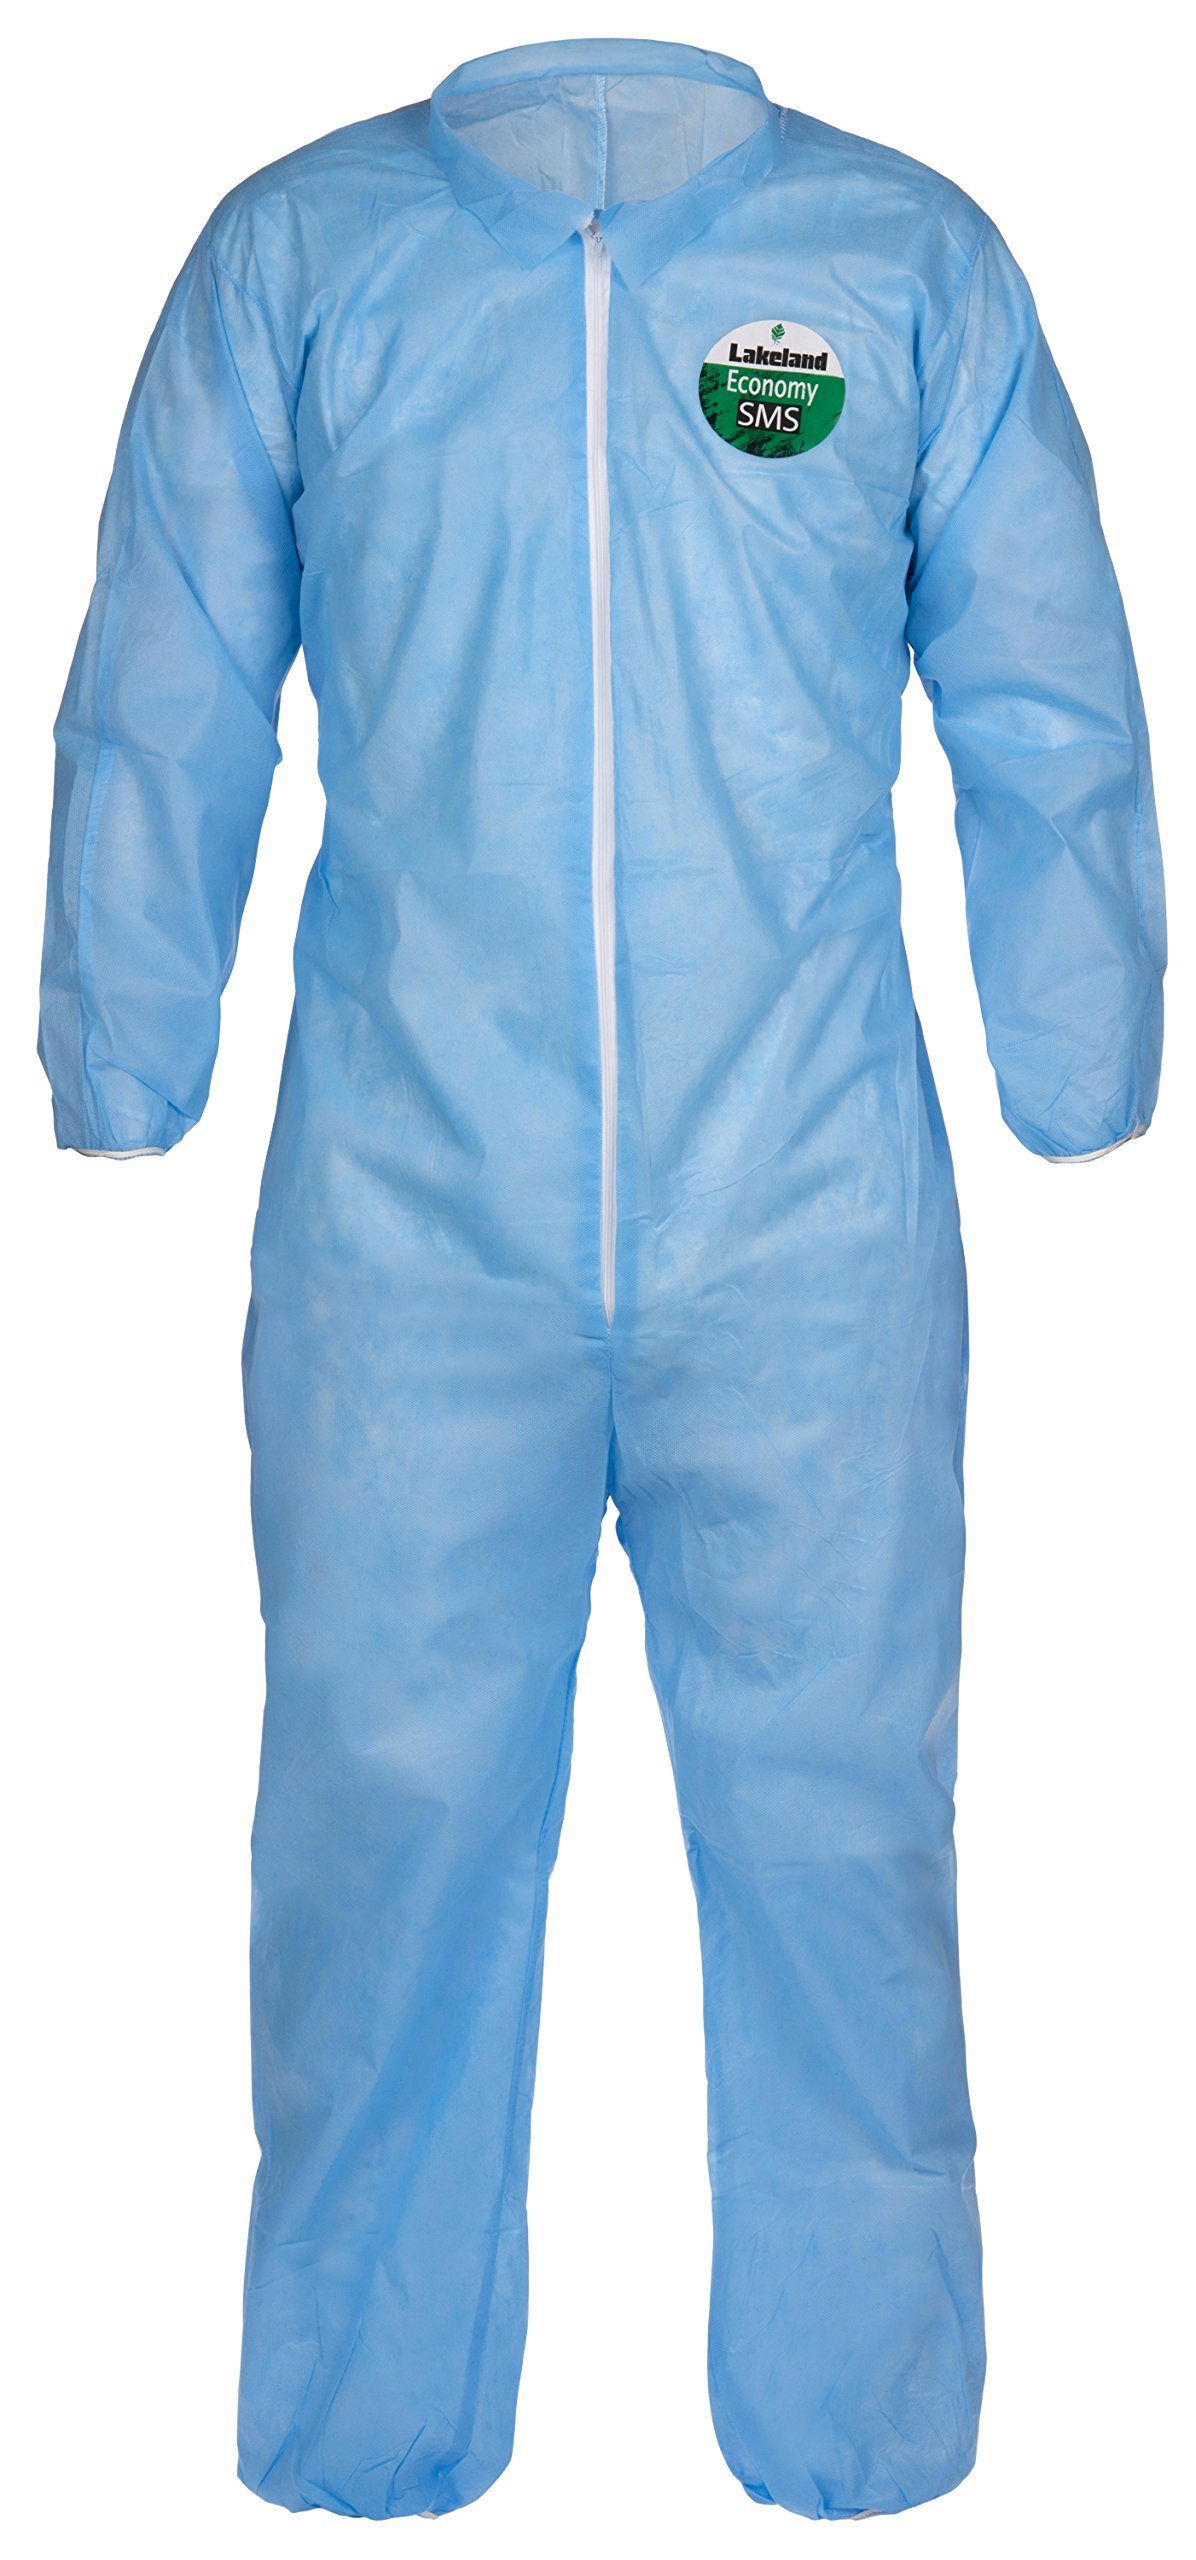 Lakeland SafeGard Economy SMS Coverall, Disposable, Elastic Cuff, 2X-Large, Blue (Case of 25)